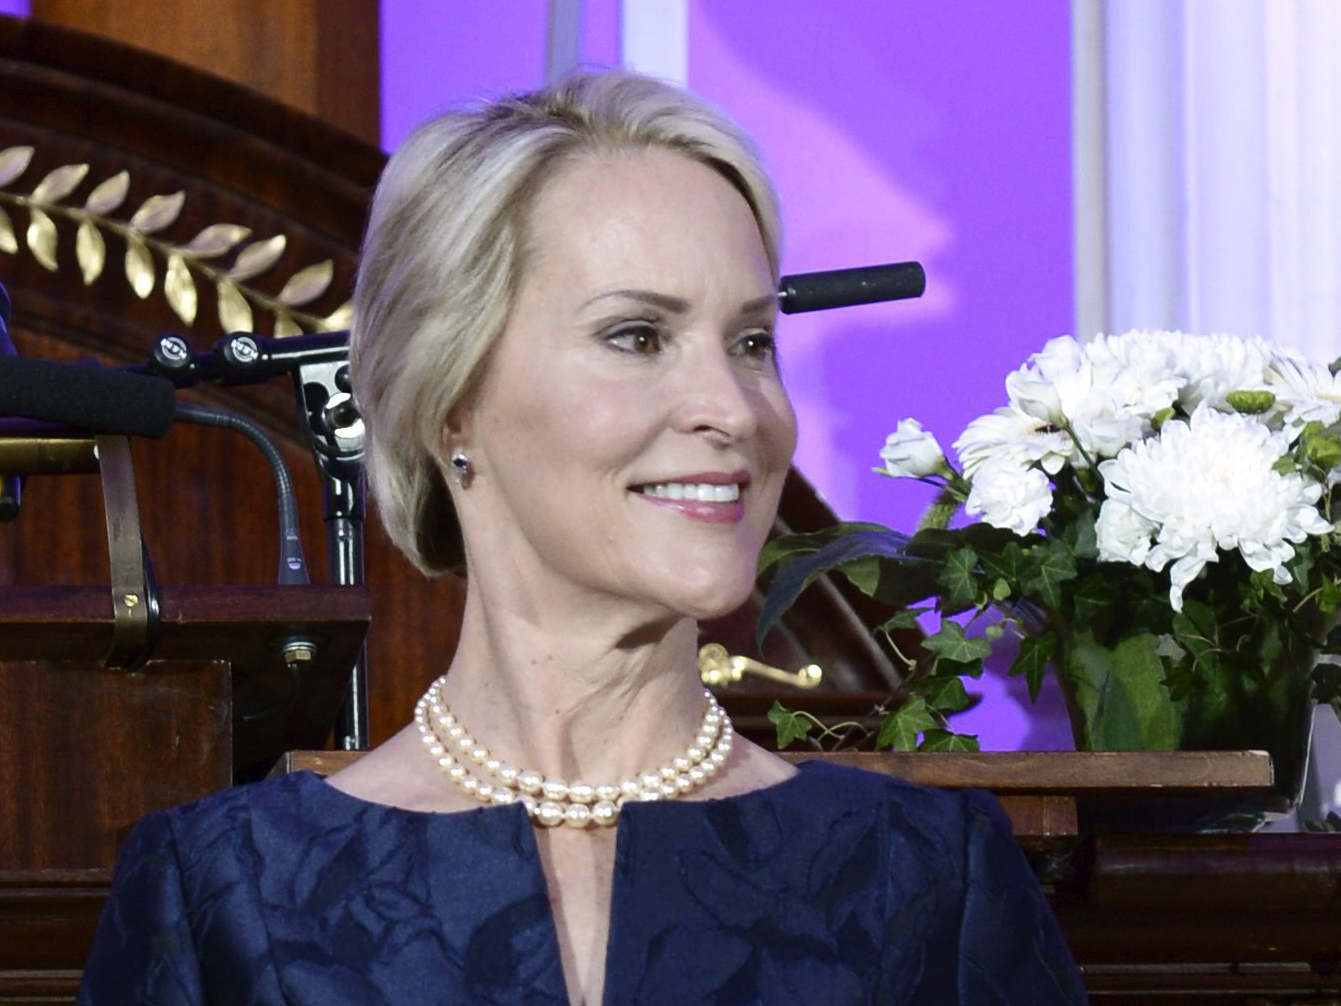 Biochemical engineer Frances Arnold receives the Millennium Technology Prize 2016 during the awards ceremony in Helsinki Finland. Arnold an American shares this year's Nobel Prize in Chemistry with two others another American George P. Smith and